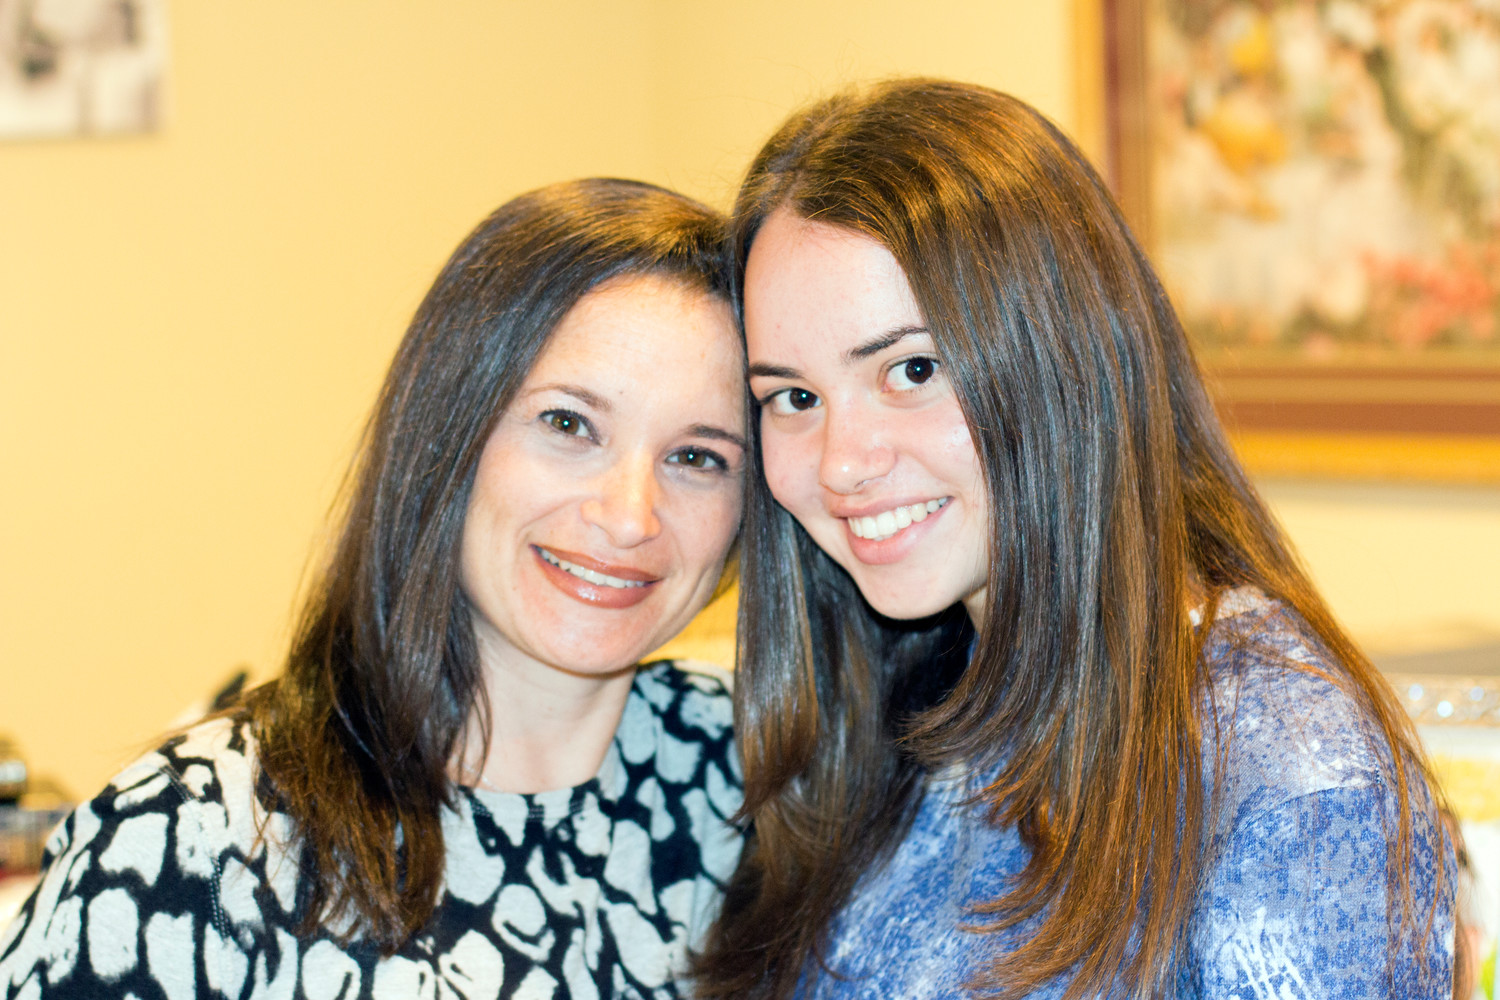 Debra and Daniella Haft, from Cedarhurst, will be honored with four other people at AMIT's Greater Long Island gala at the Sephardic Temple on Oct. 31.